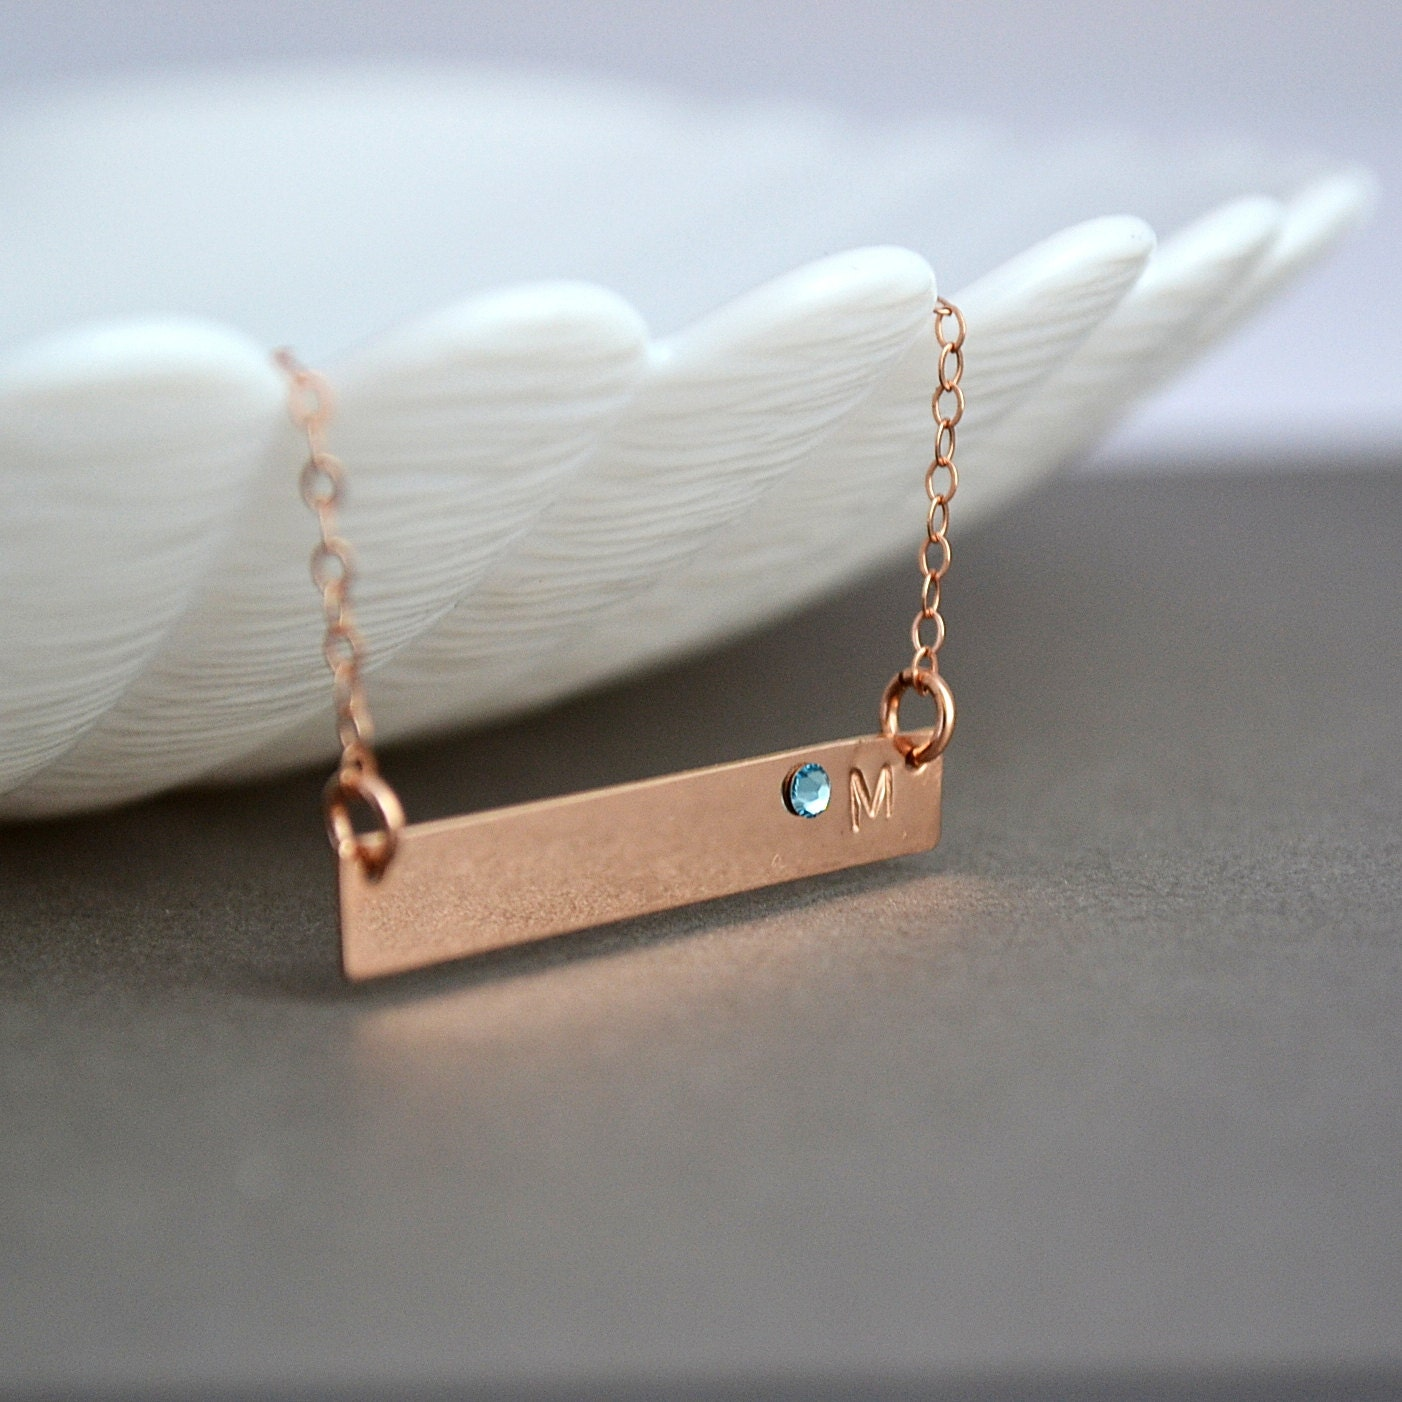 Personalized bridesmaid gift rose gold bar necklace for Rose gold personalized jewelry